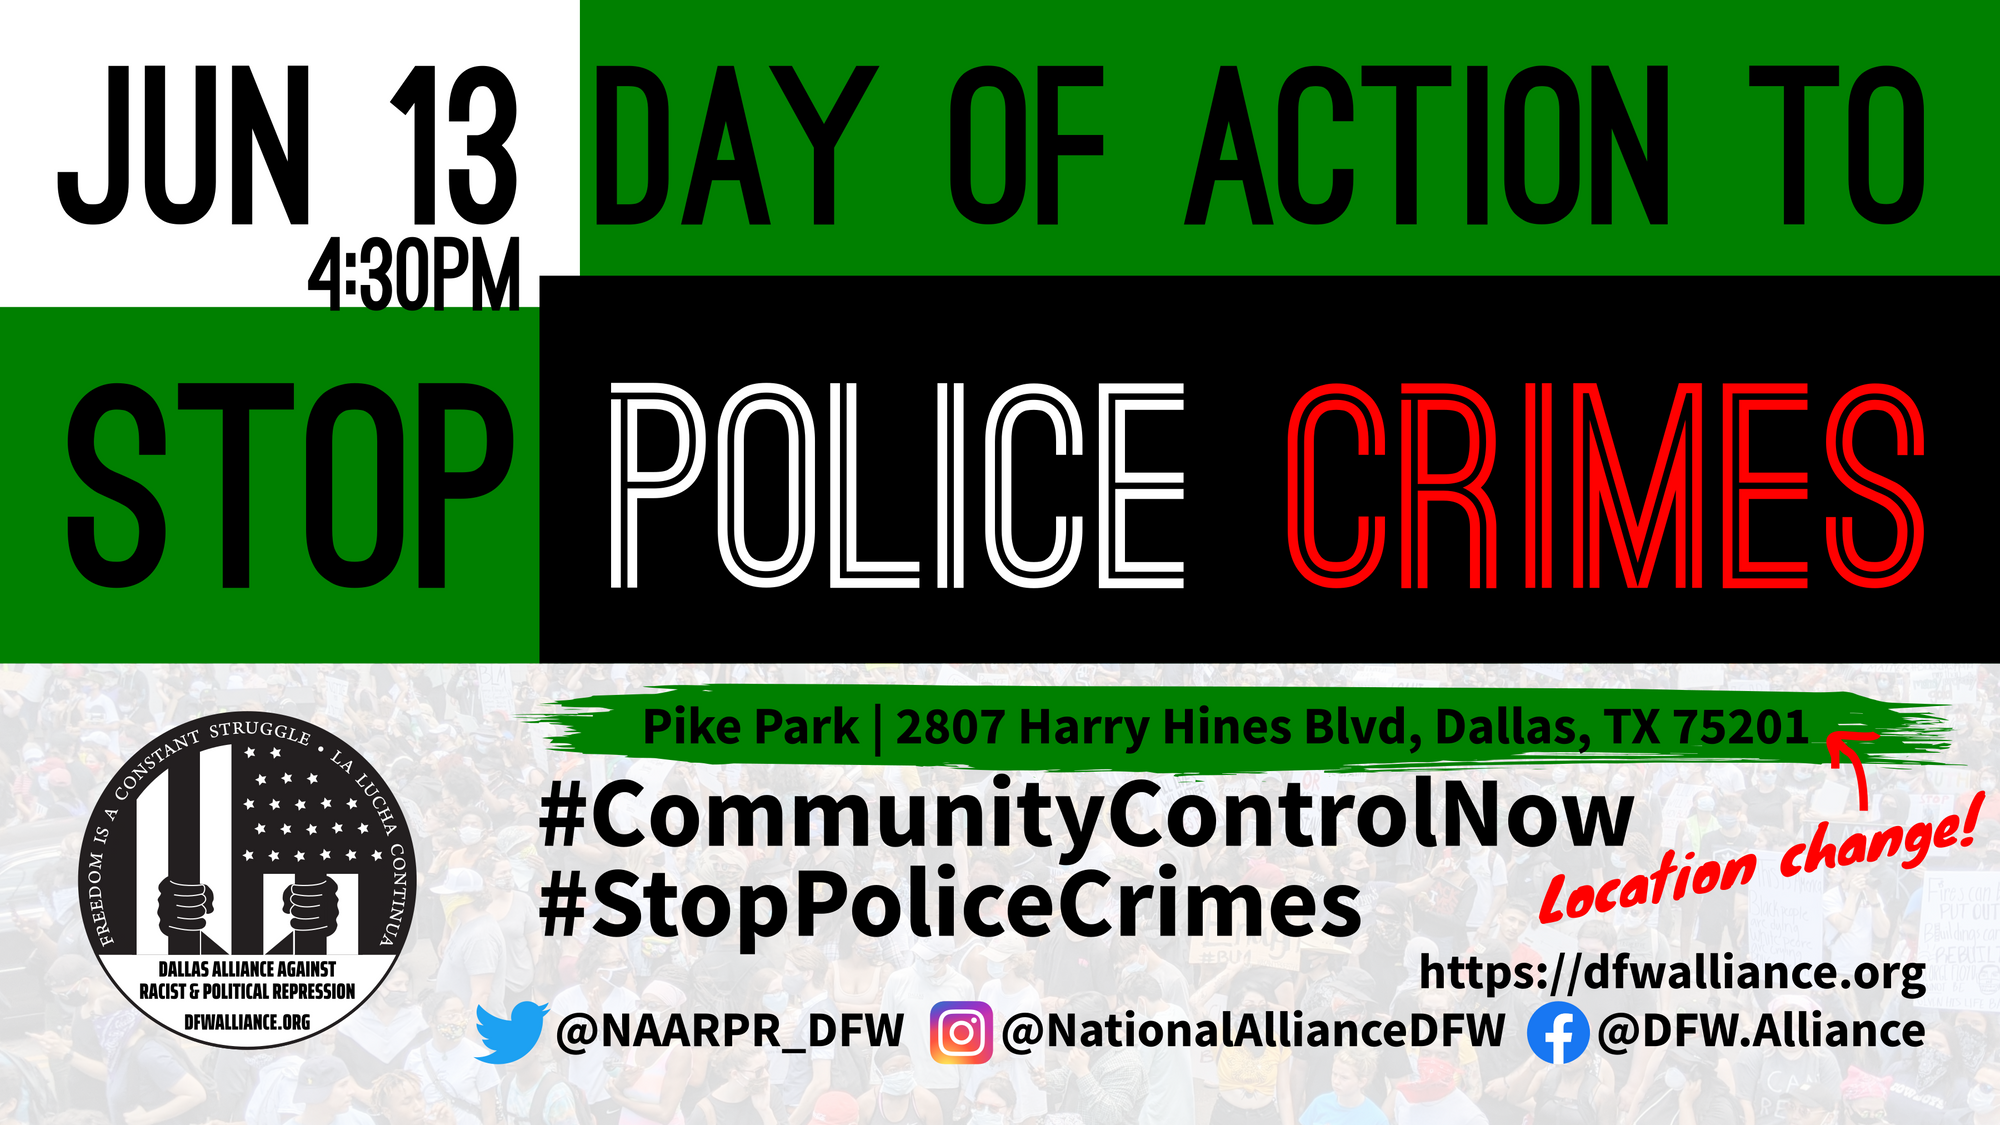 Dallas Day of Action to Stop Police Crimes